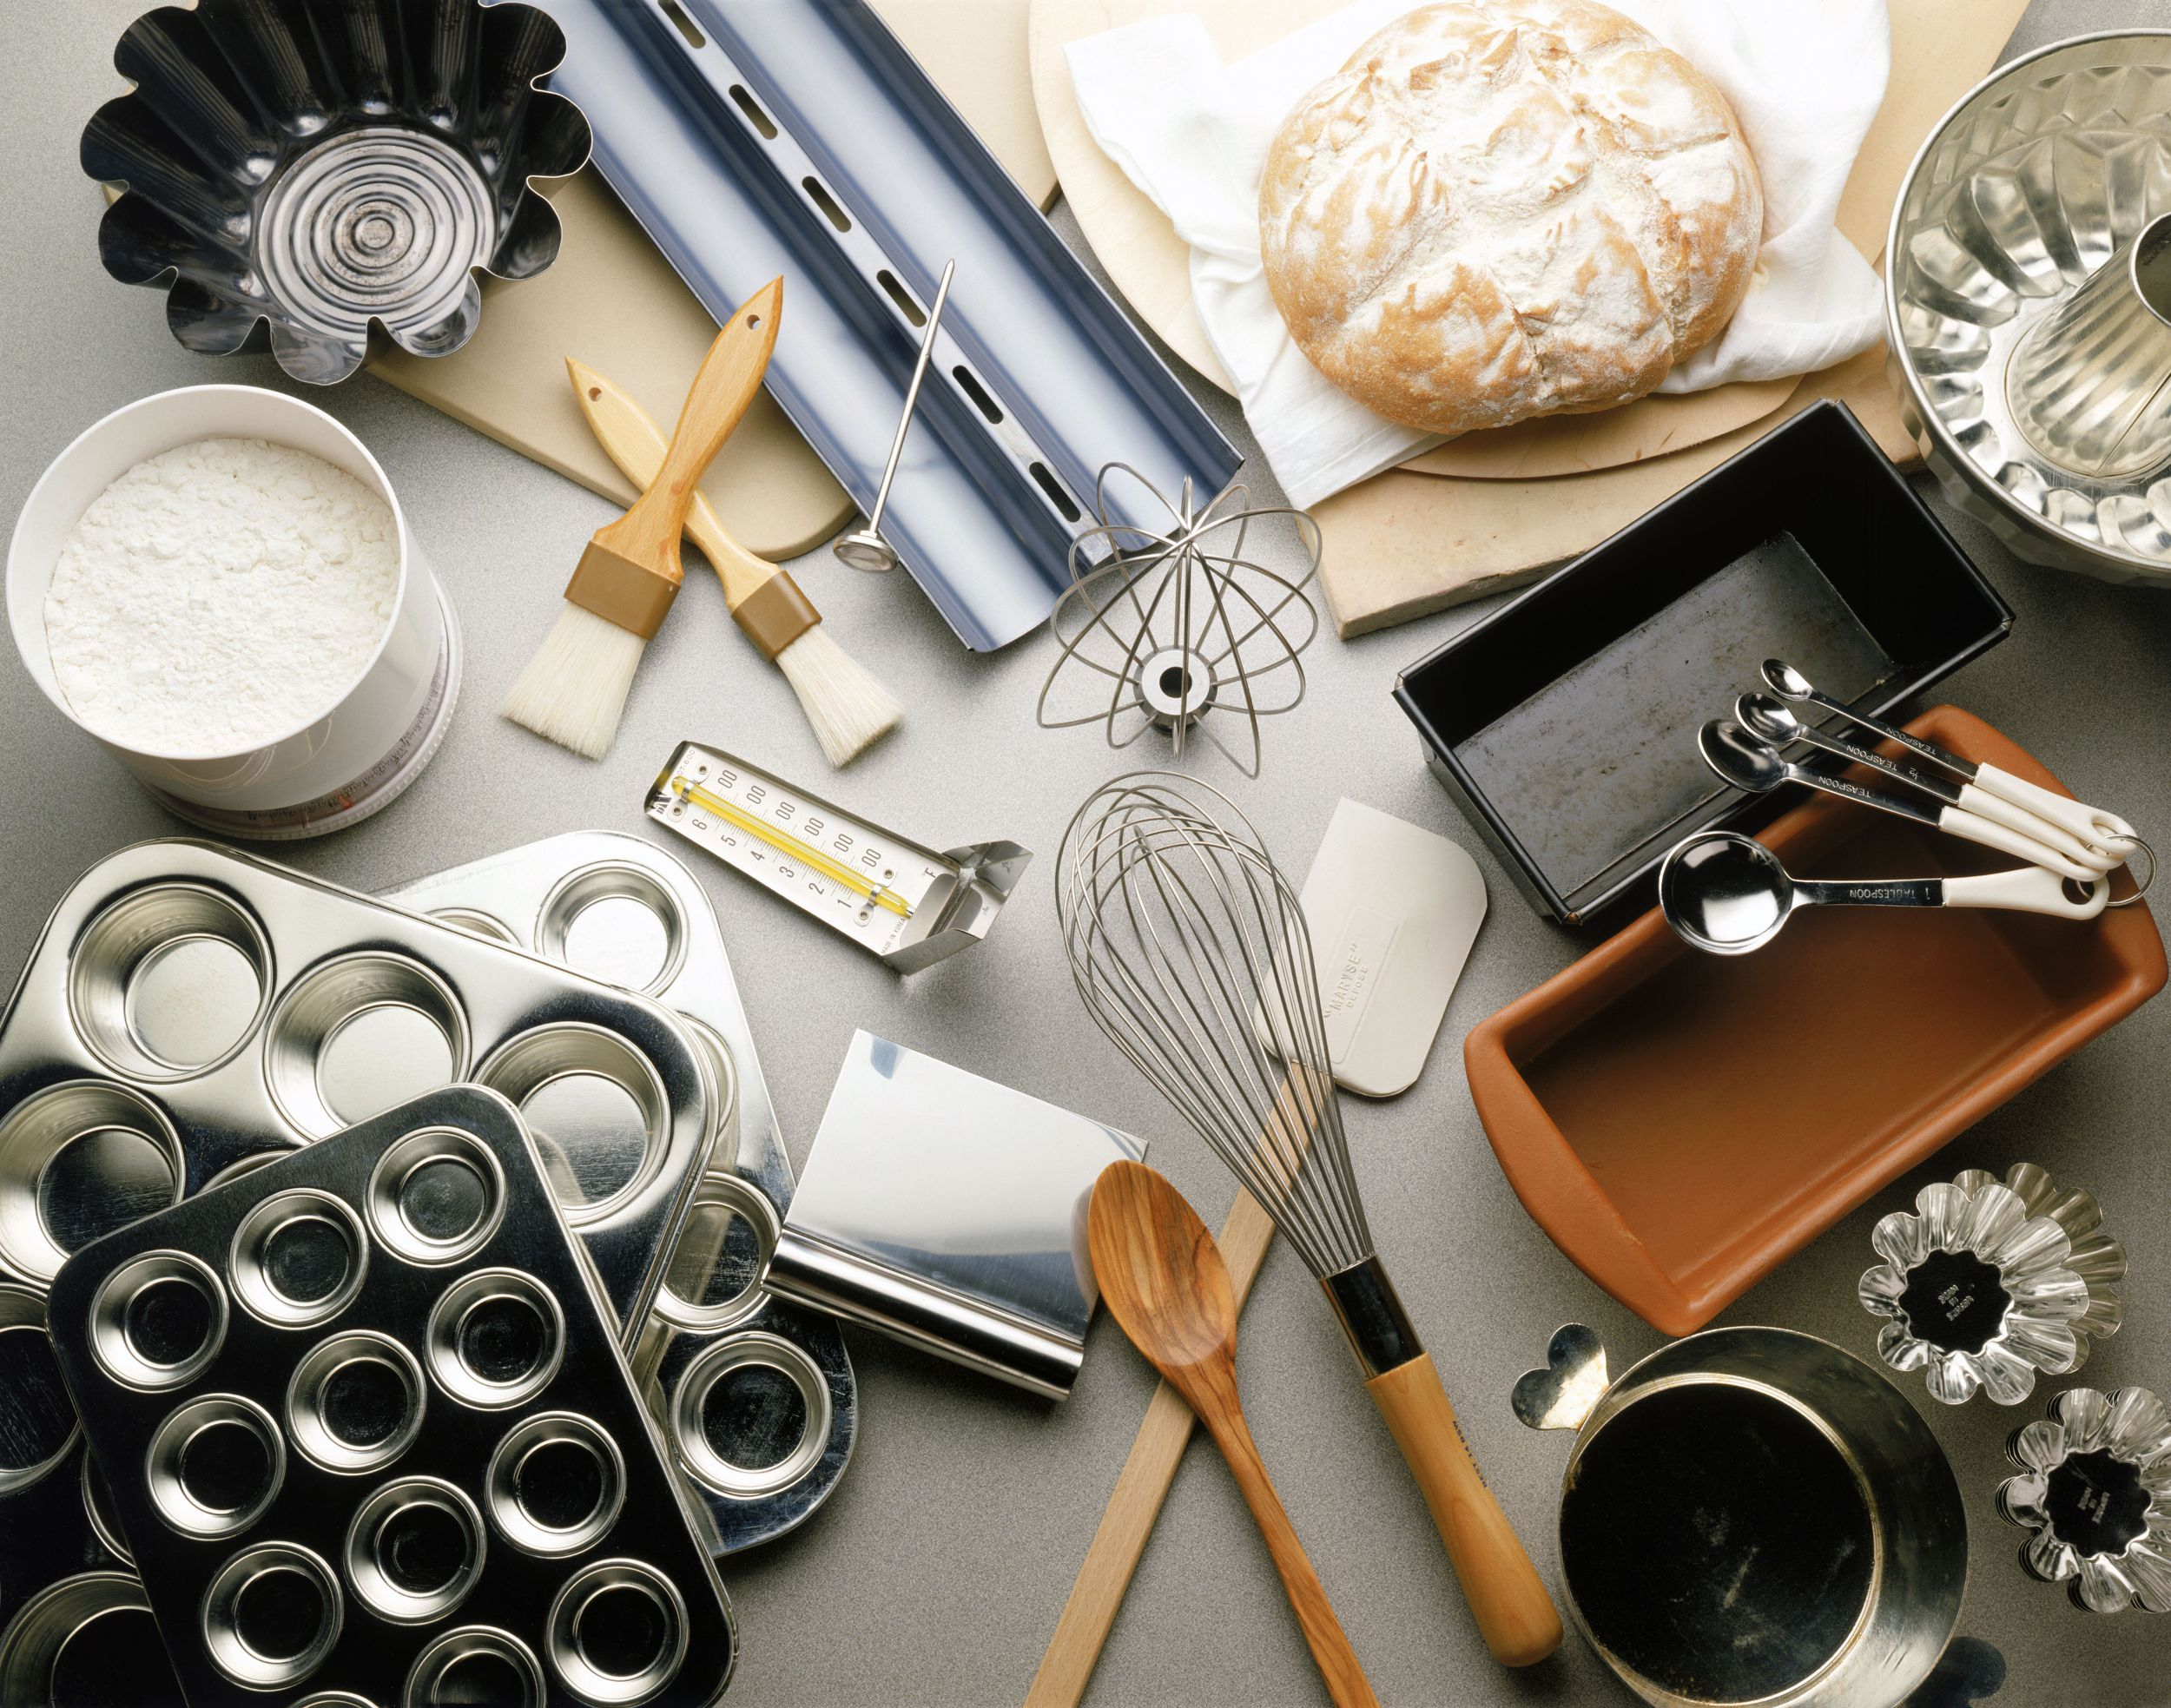 If you want to start making baked goods at home, it's important to get the  right pastry tools. Here are 18 essentials to… | Baking gadgets, Baking  tools, Chef tools